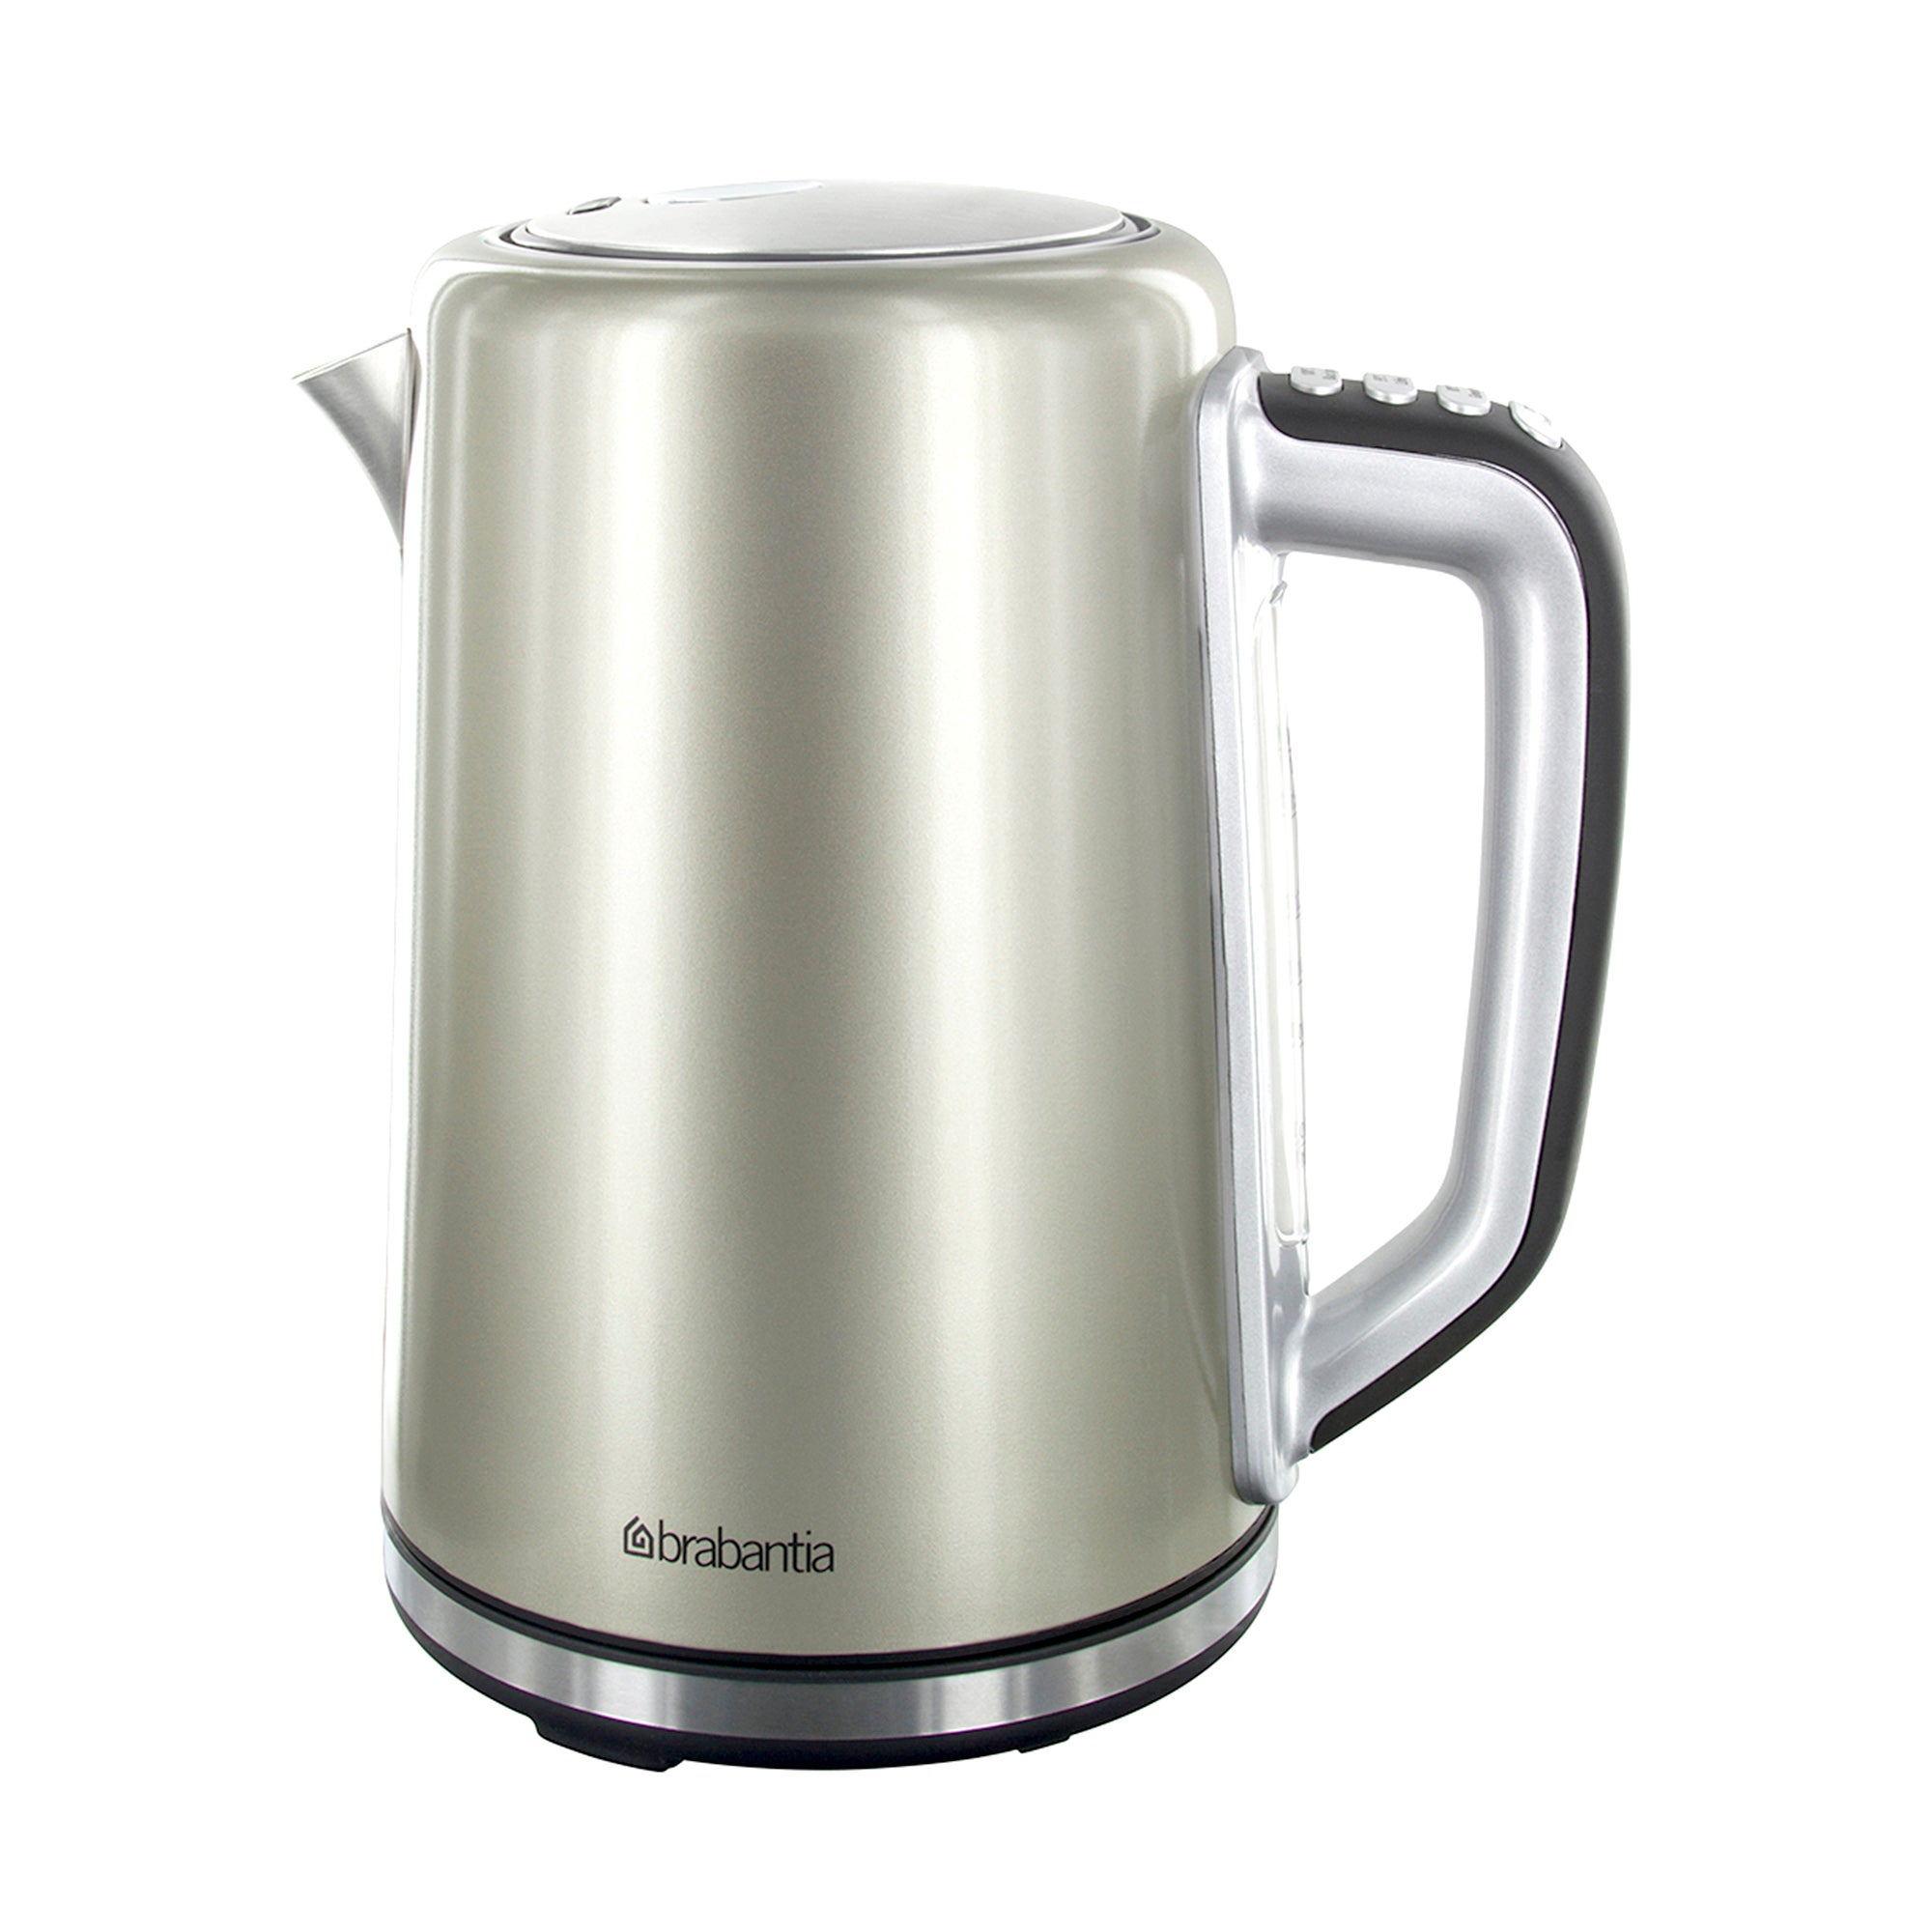 Brabantia Champagne Stainless Steel Soft Grip Digital Kettle